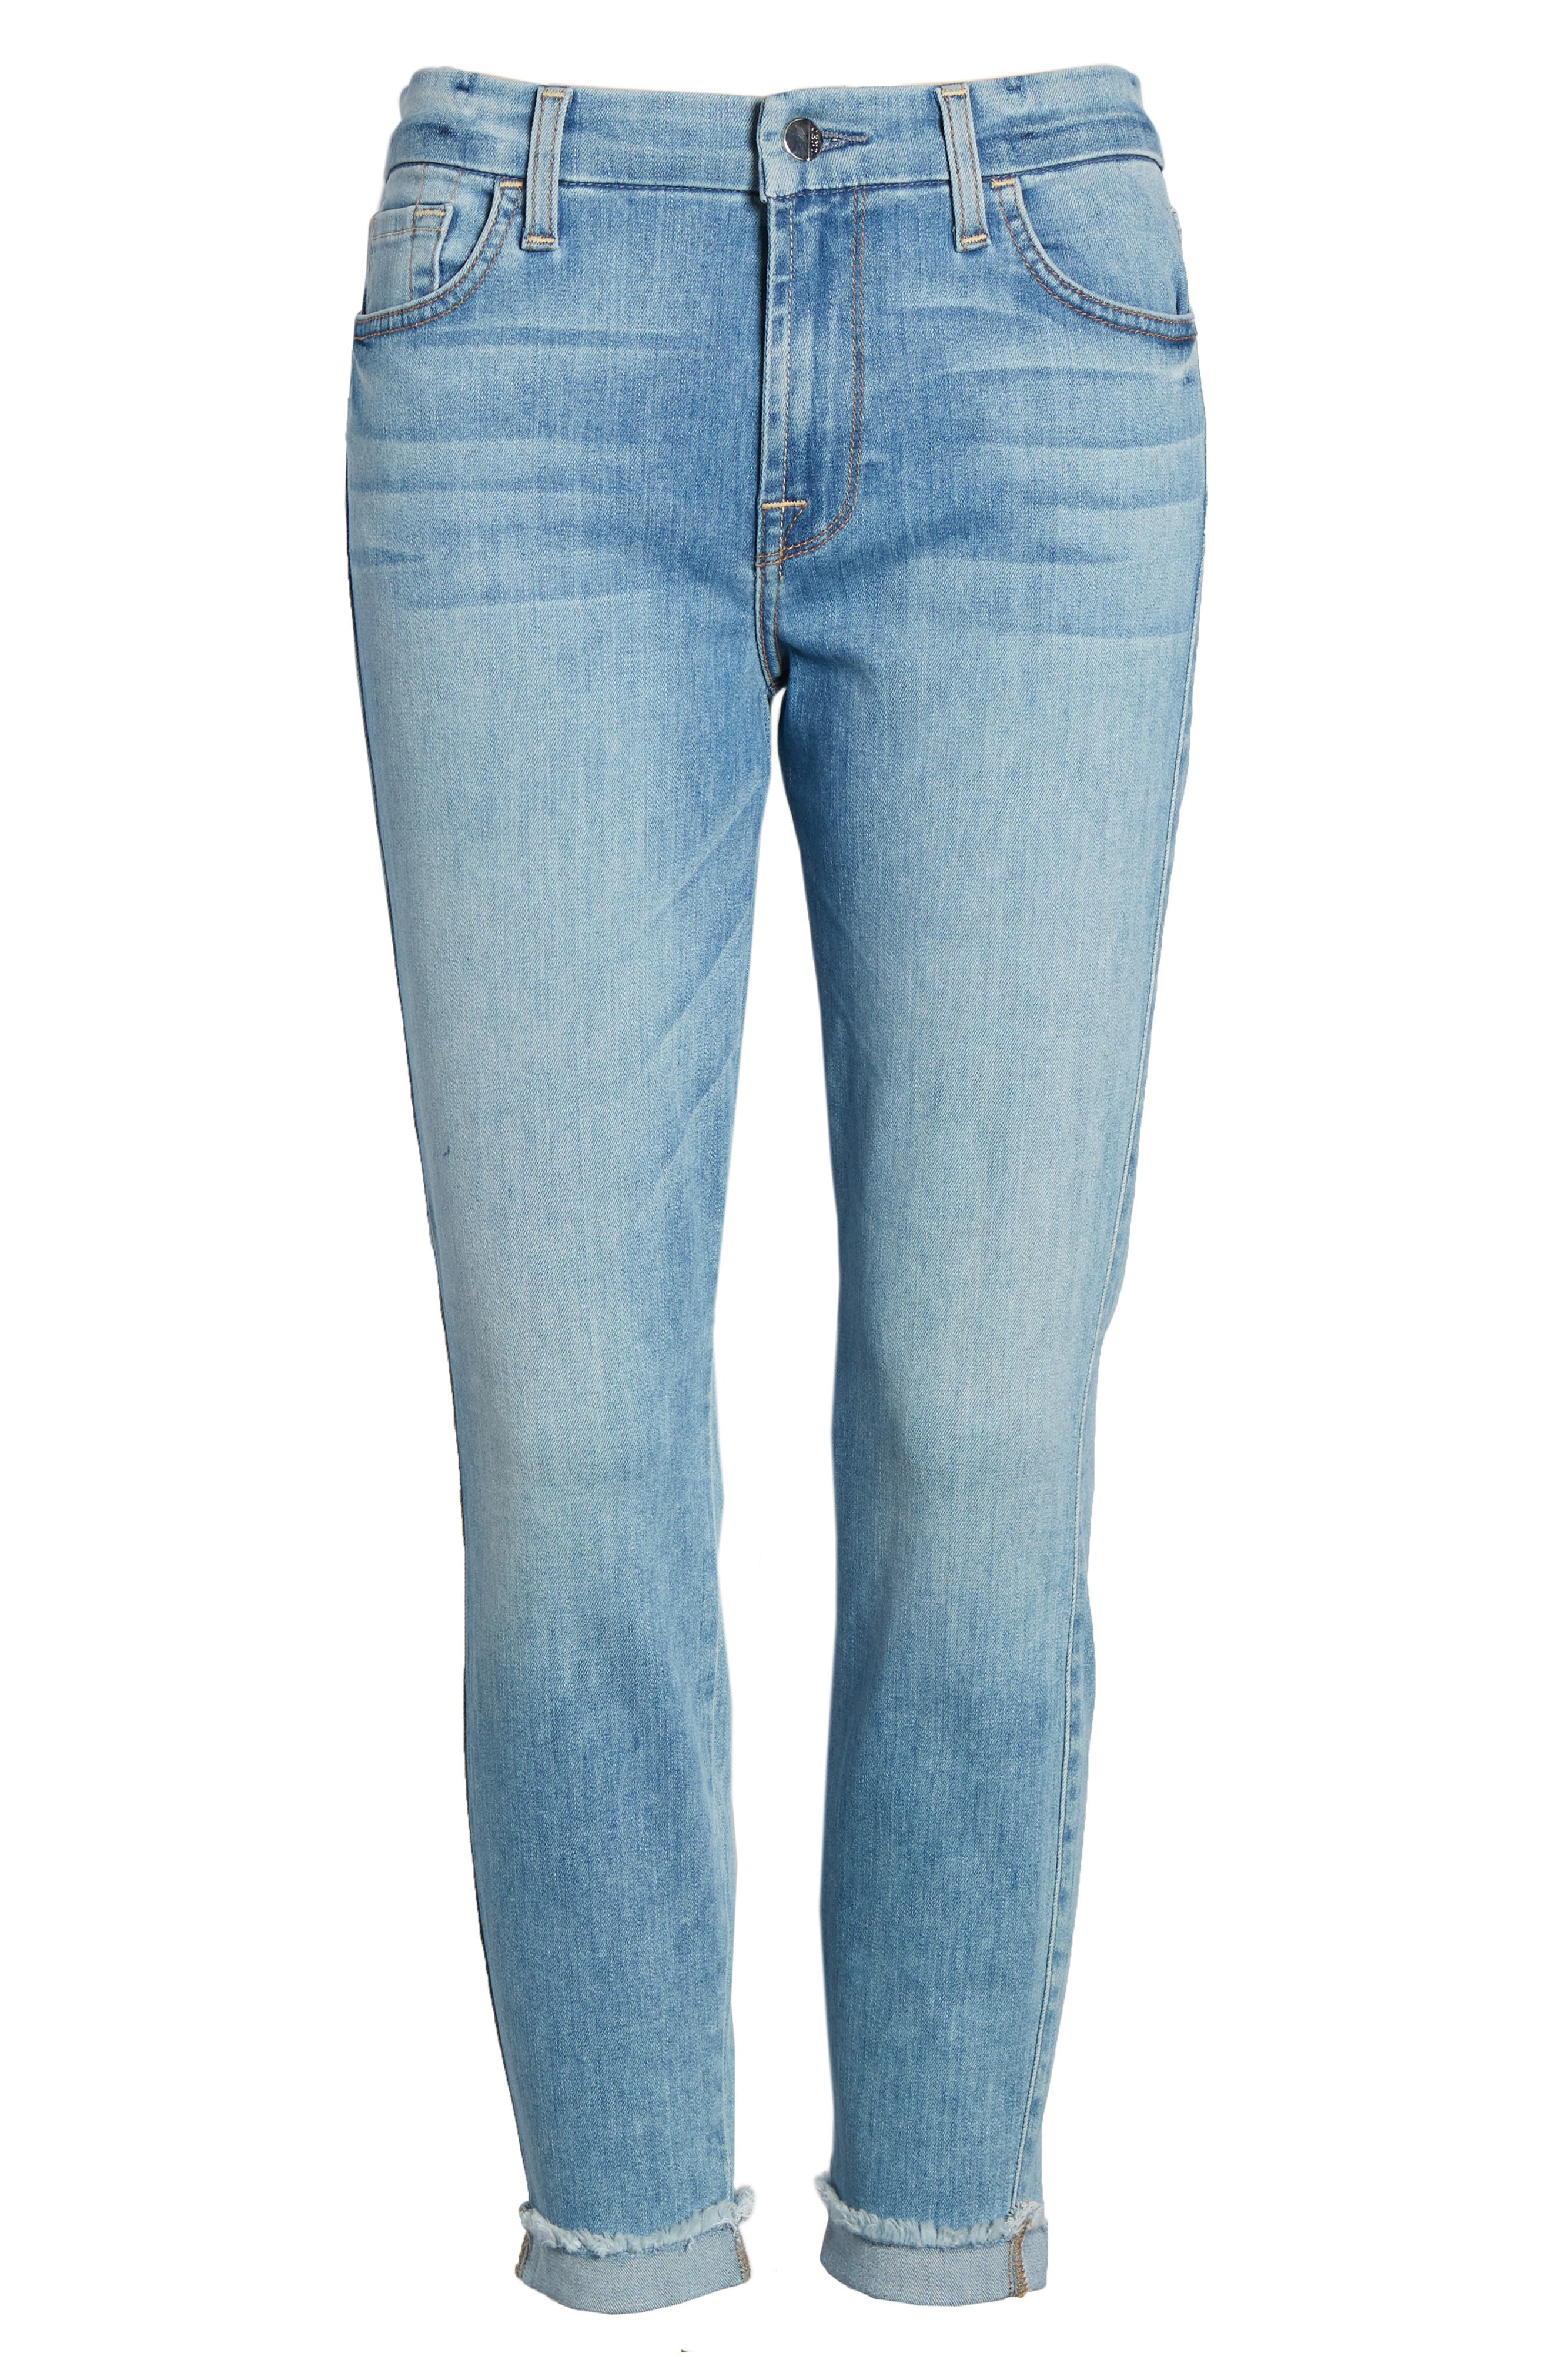 JEN7 BY 7 FOR ALL MANKIND, Cuffed Crop Skinny Jeans, Alternate thumbnail 7, color, LA QUINTA